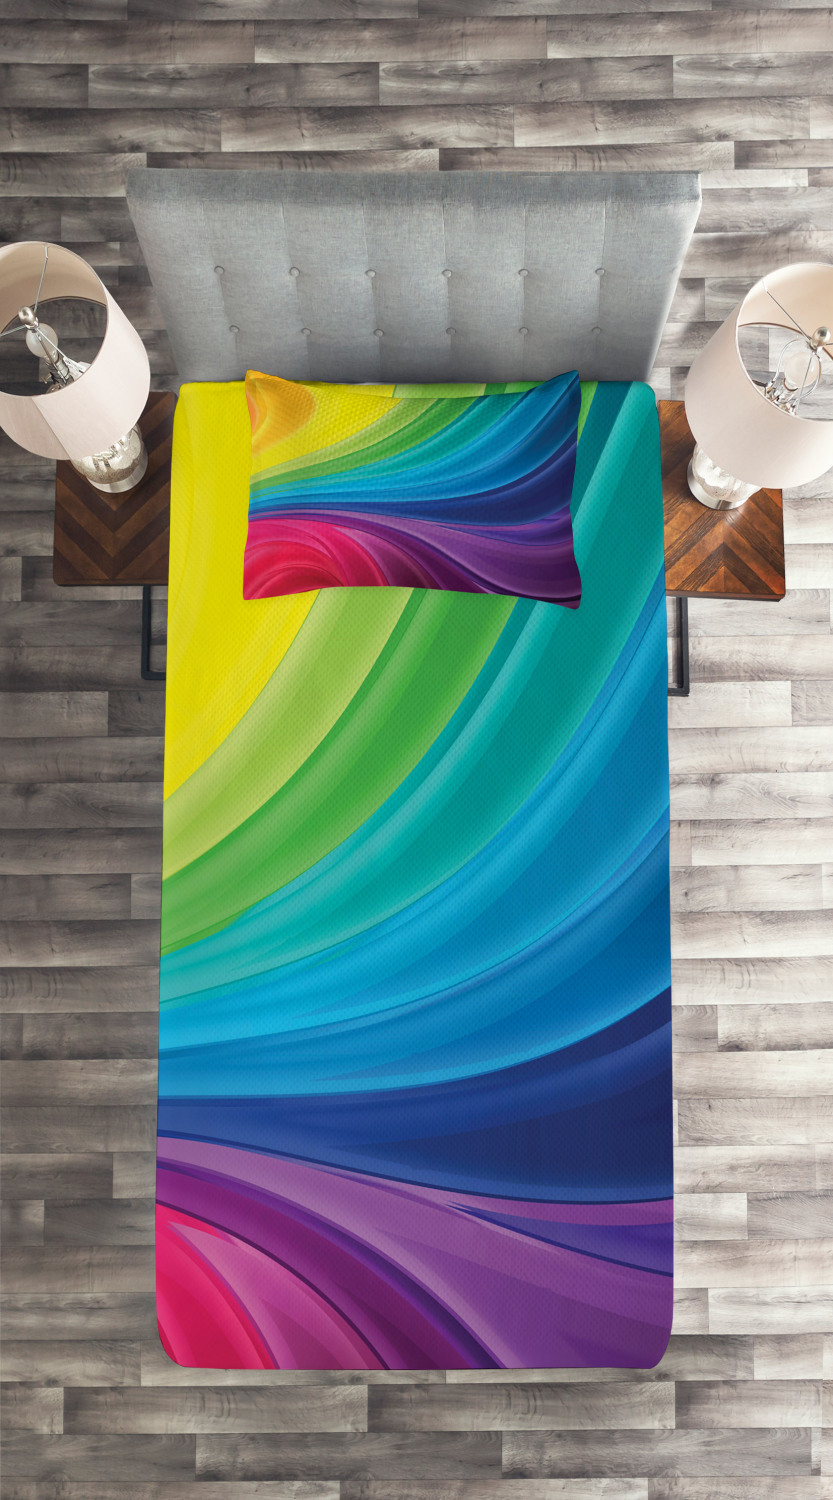 Colorful-Quilted-Coverlet-amp-Pillow-Shams-Set-Abstract-Smooth-Lines-Print thumbnail 4